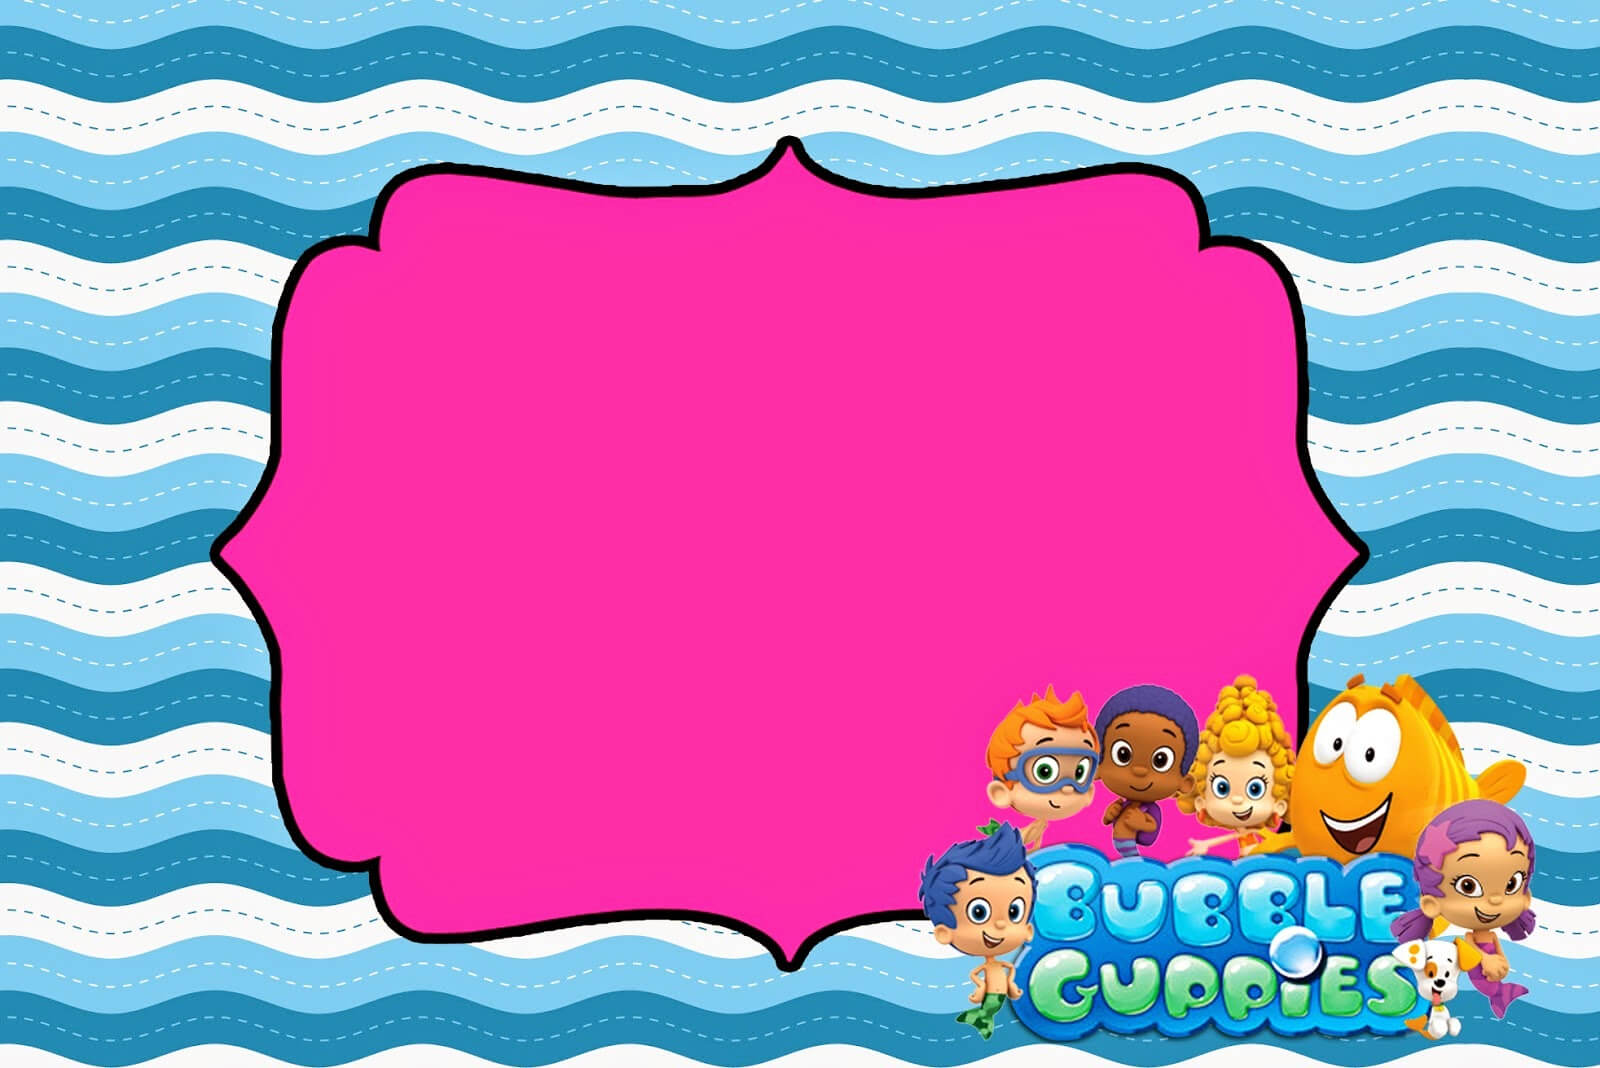 Tips & Ideas: Lovely Bubble Guppies Invitations For Your With Regard To Bubble Guppies Birthday Banner Template